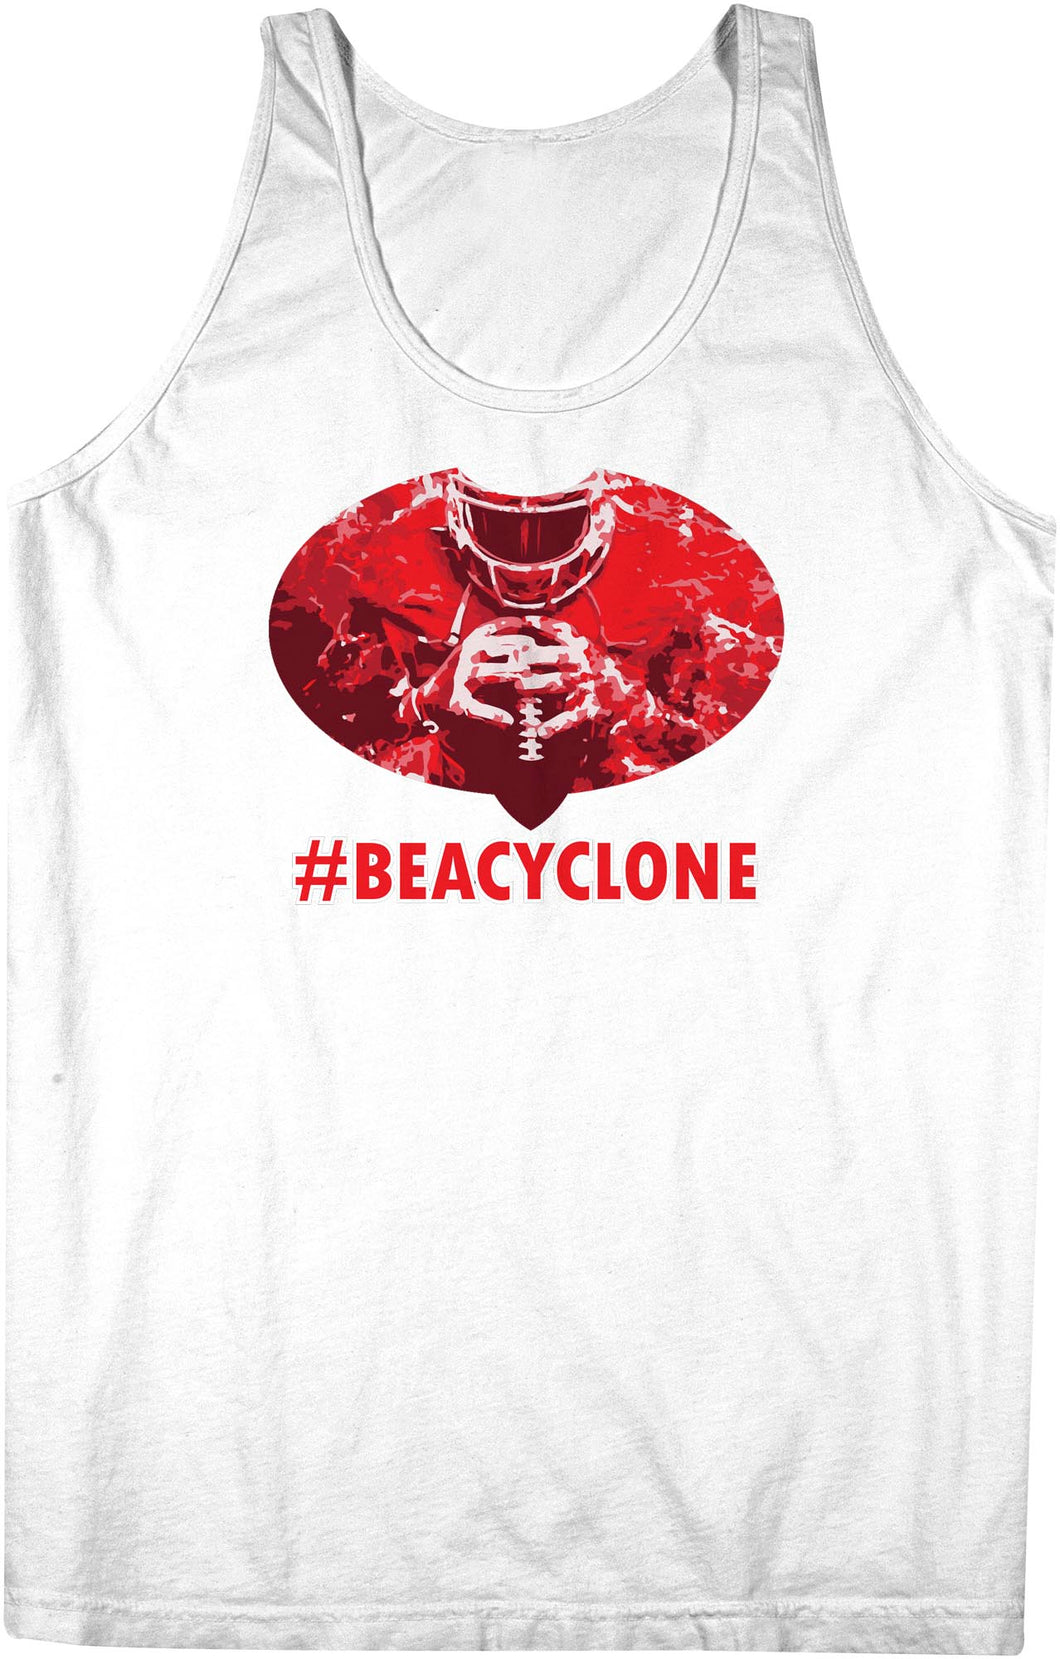 Be A Cyclone Team Singlet